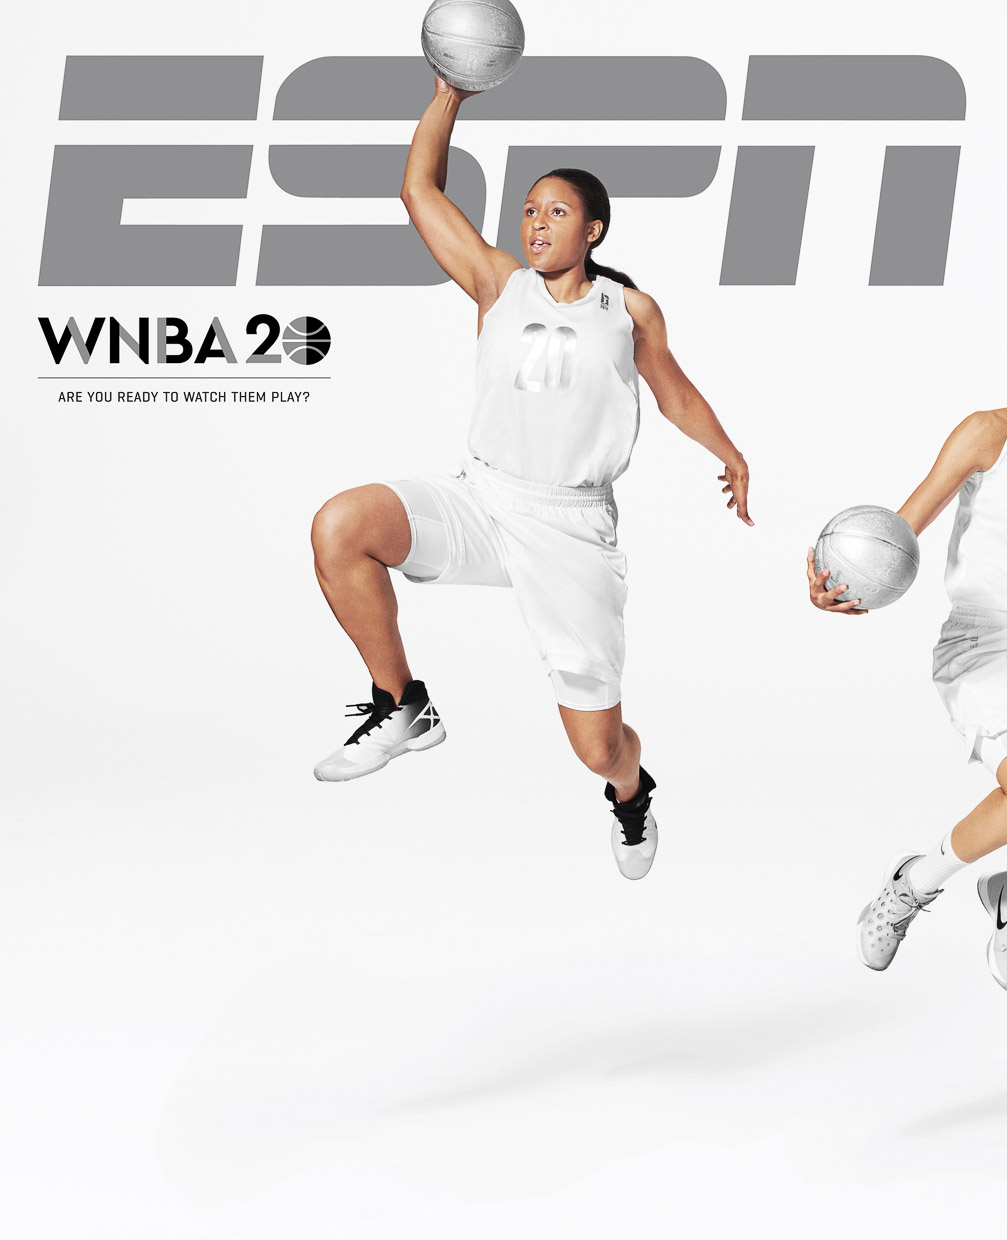 ESPN_WNBA_Covers-3